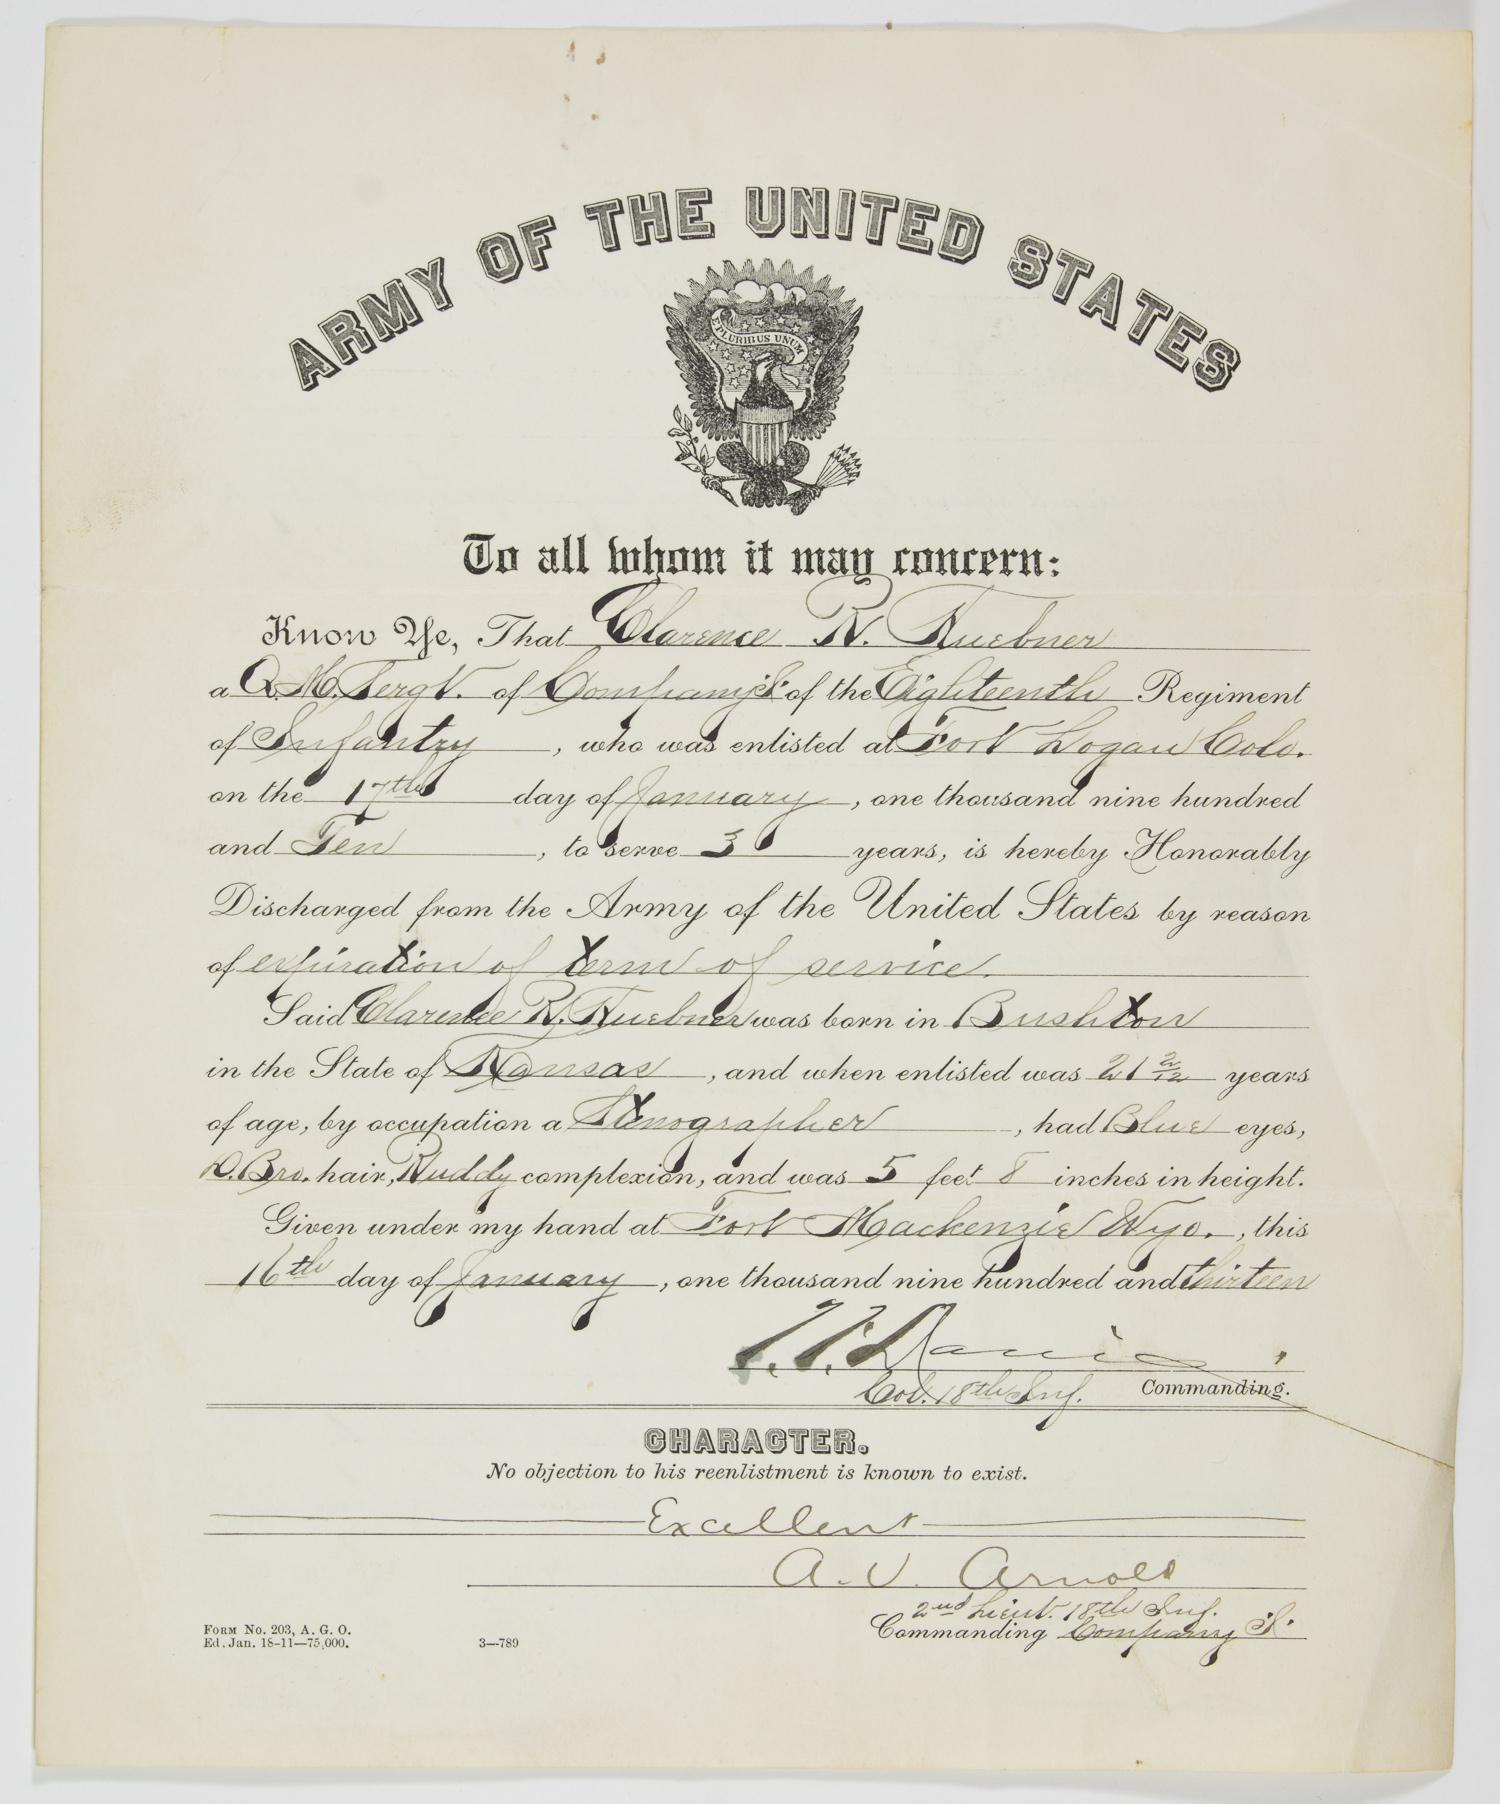 CLARENCE R. HUEBNER IS HONORABLY DISCHARGED AFTER FIRST TERM IN U.S. ARMY